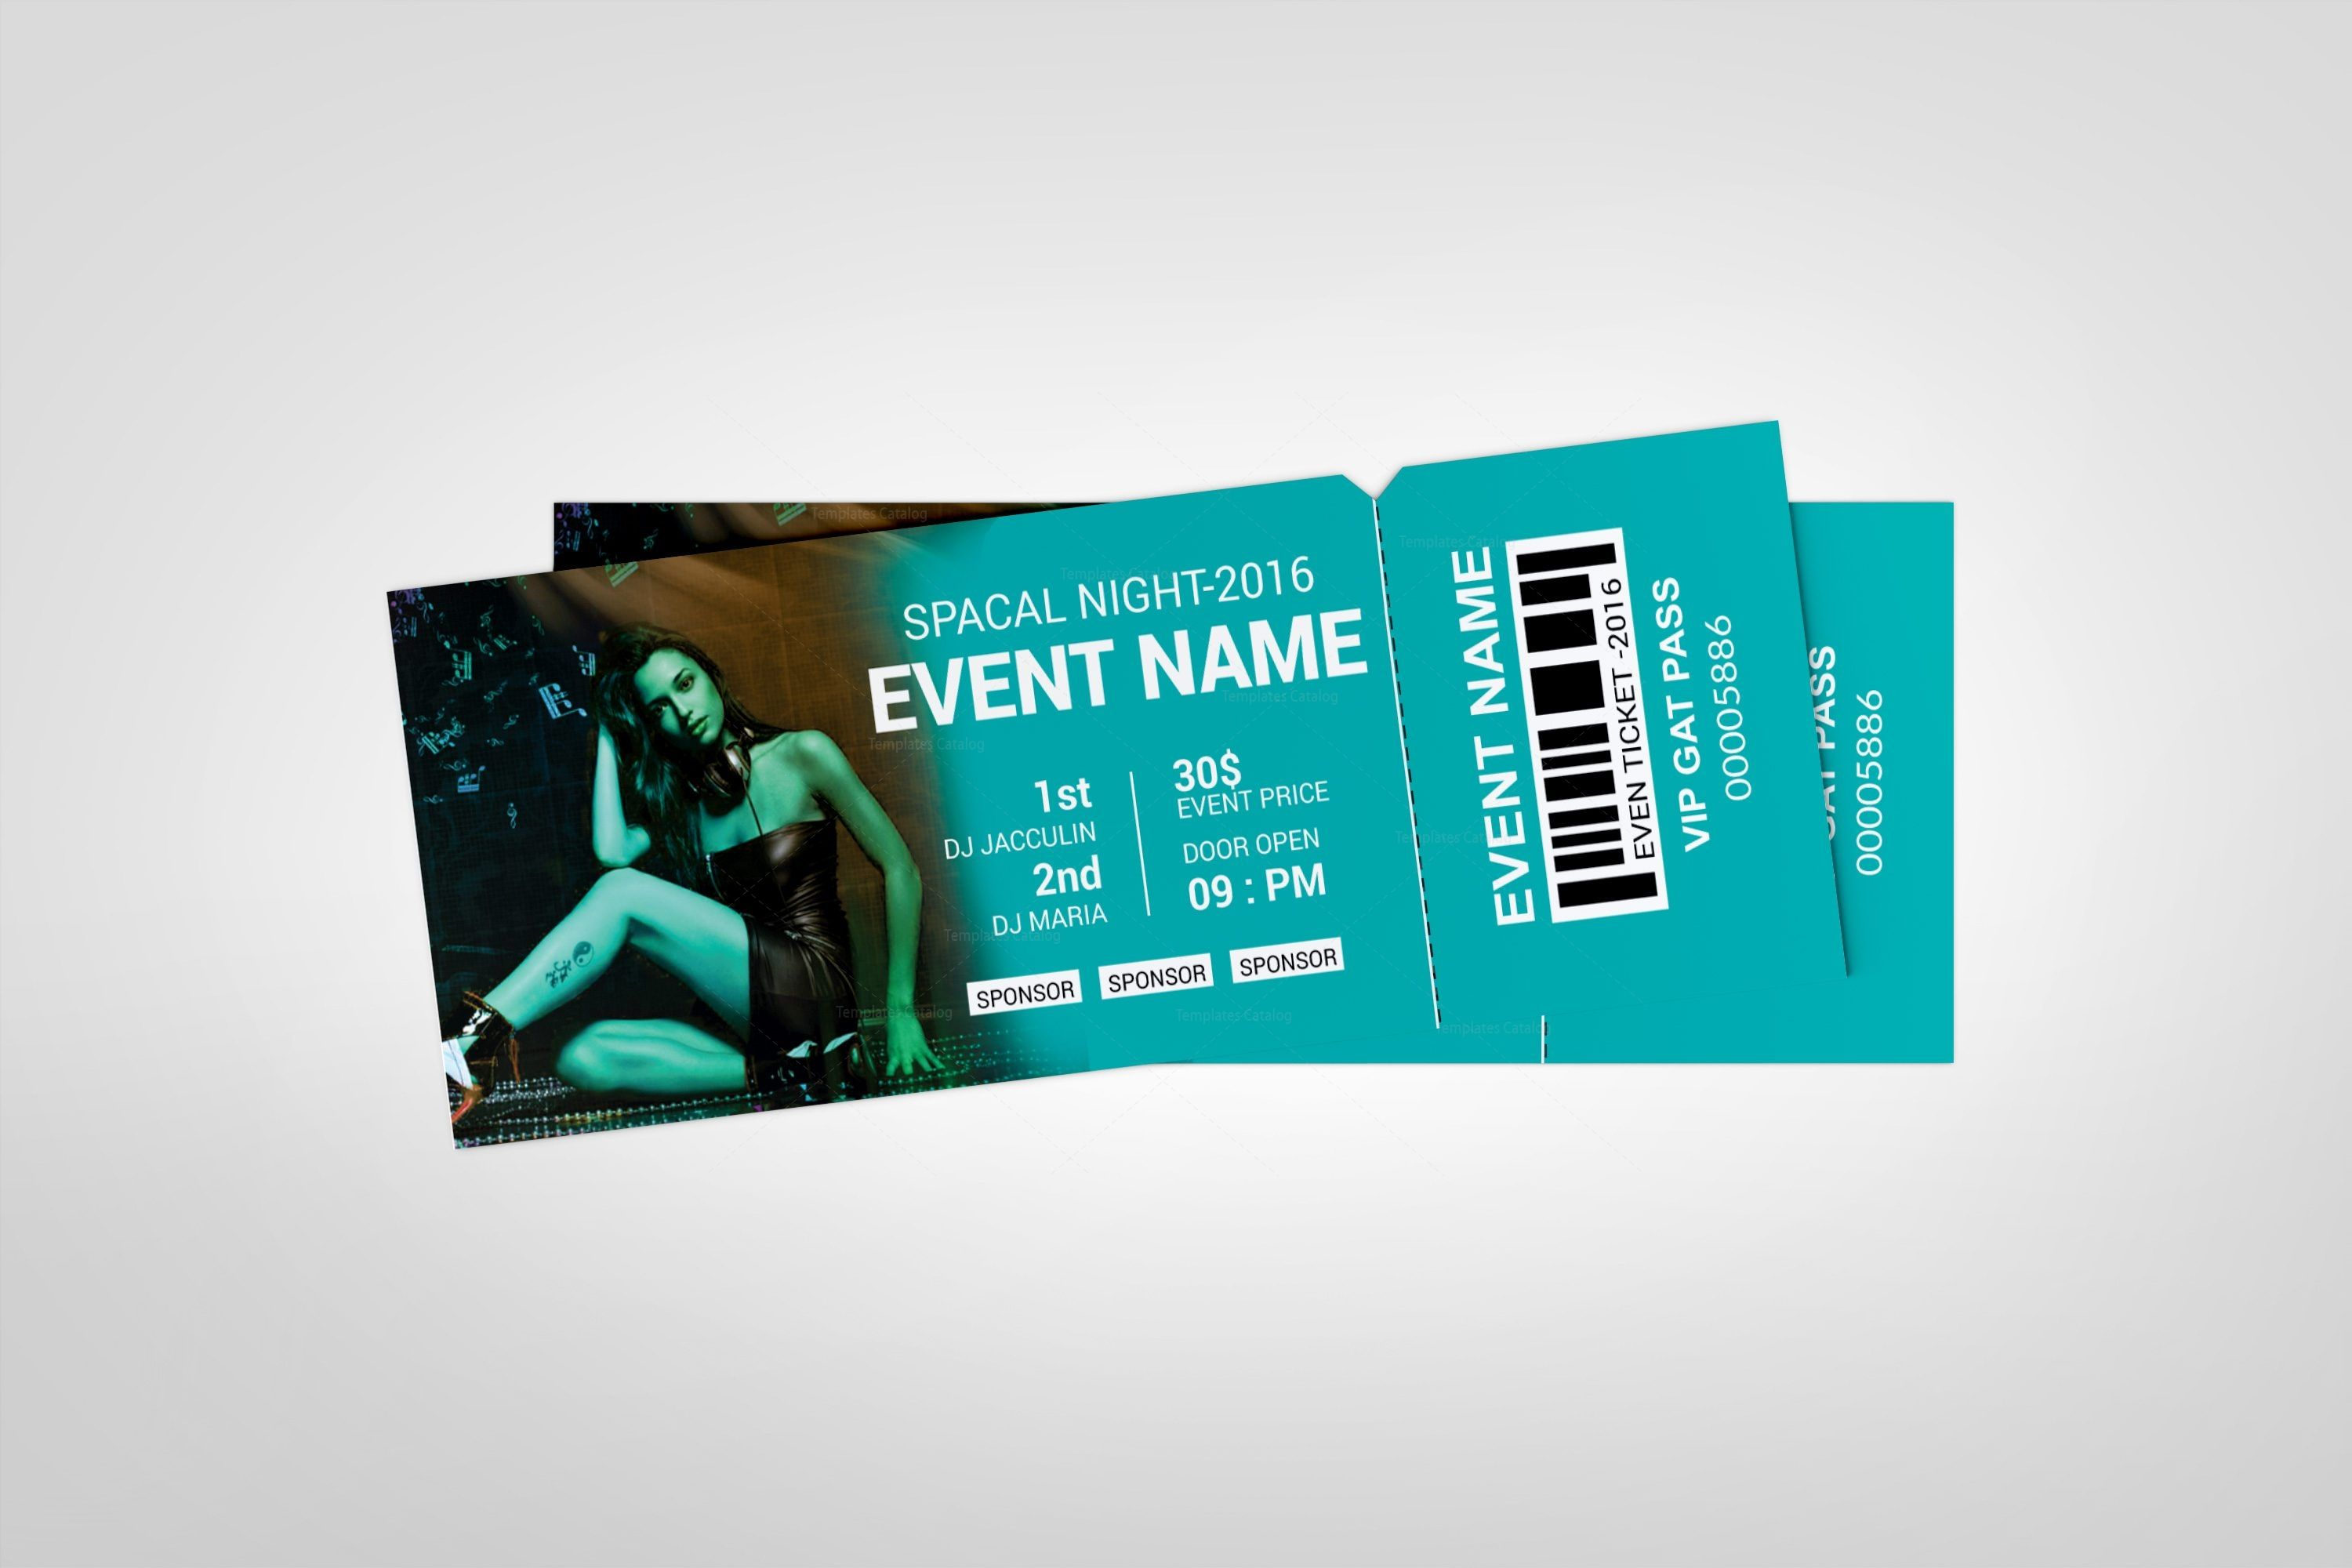 Party Event Ticket Design Template Graphic Templates Ticket Design Ticket Design Template Event Tickets Design